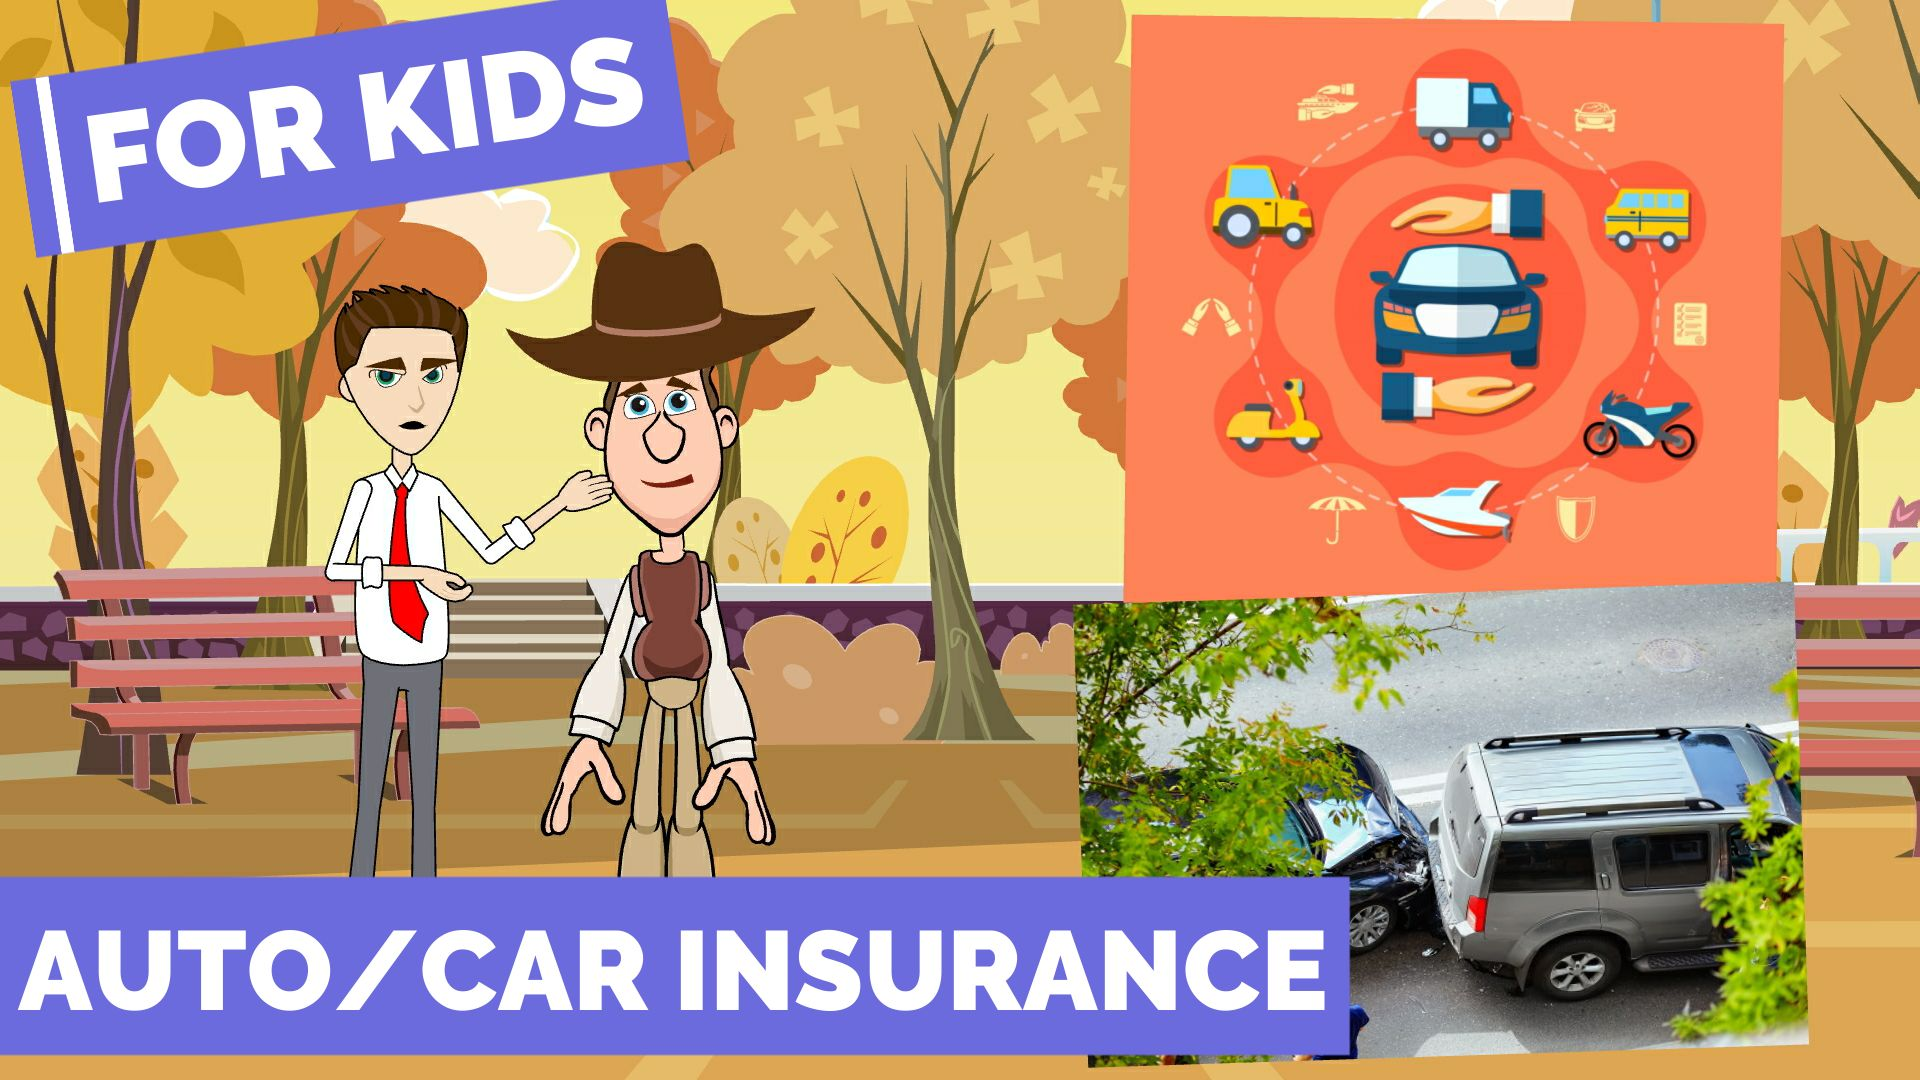 Auto Insurance Car Insurance for Kids